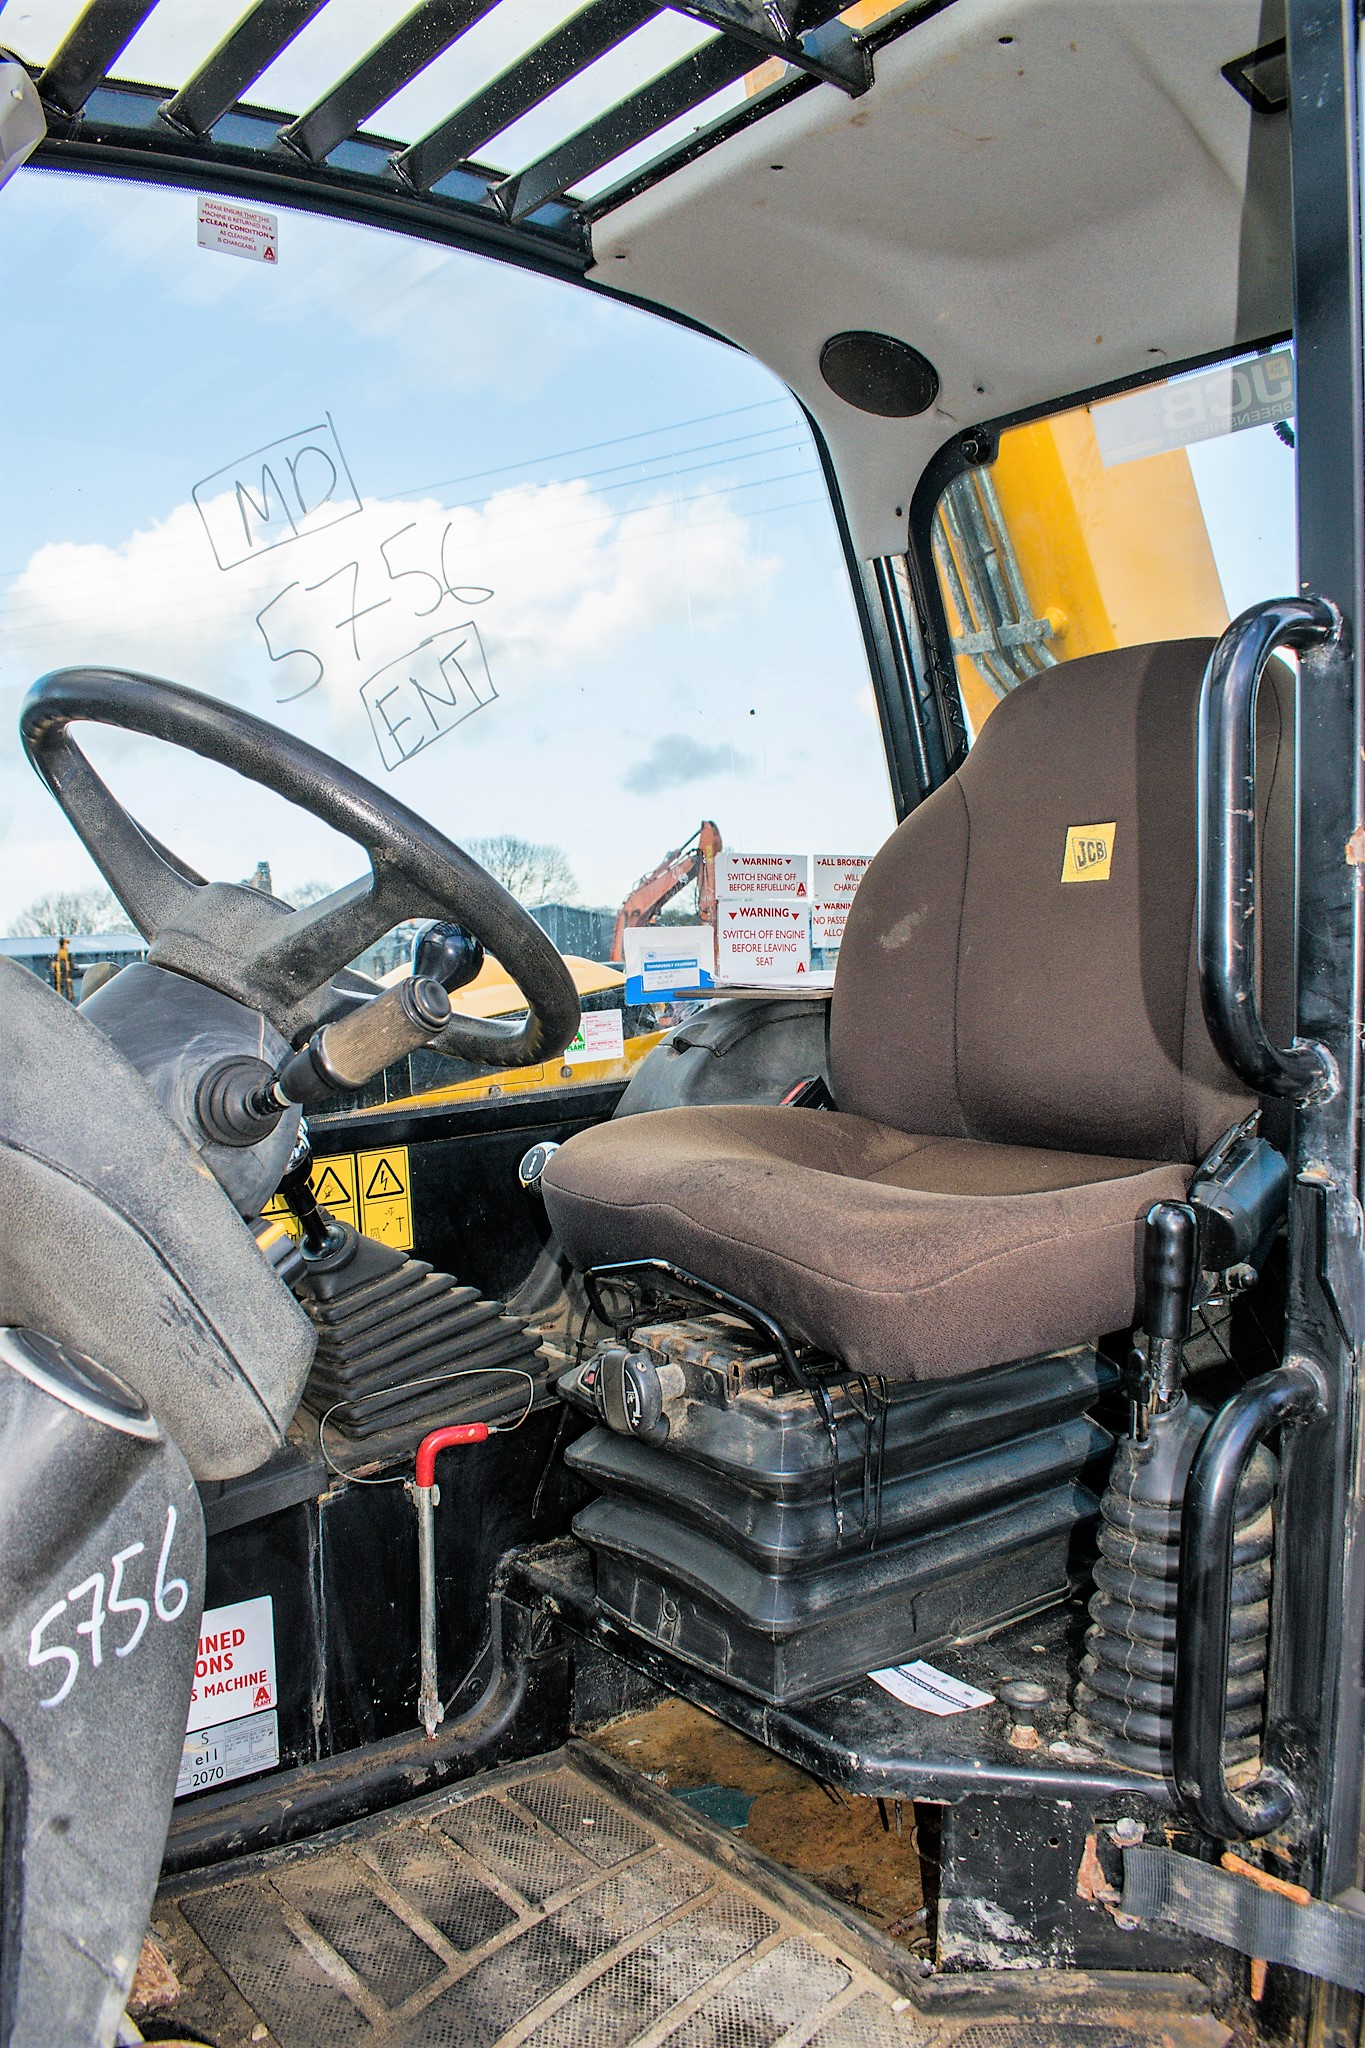 JCB 531-70 7 metre telescopic handler Year: 2013 S/N: 2176575 Reg No: MX13 PHY Recorded Hours: - Image 18 of 19